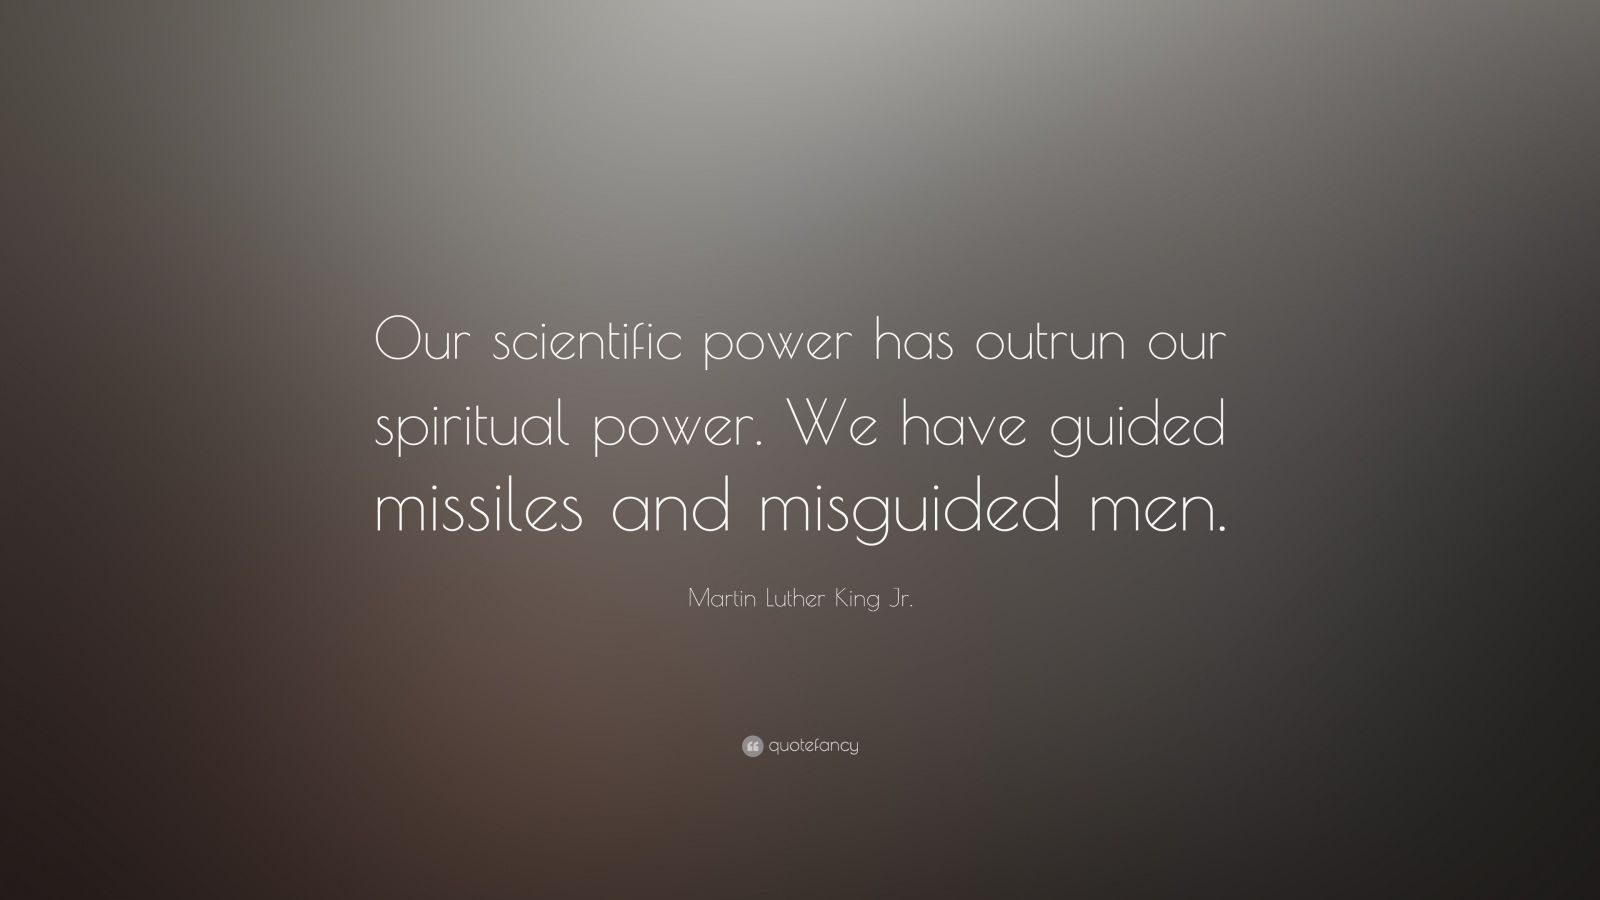 our scientific power has outrun our spiritual power essay